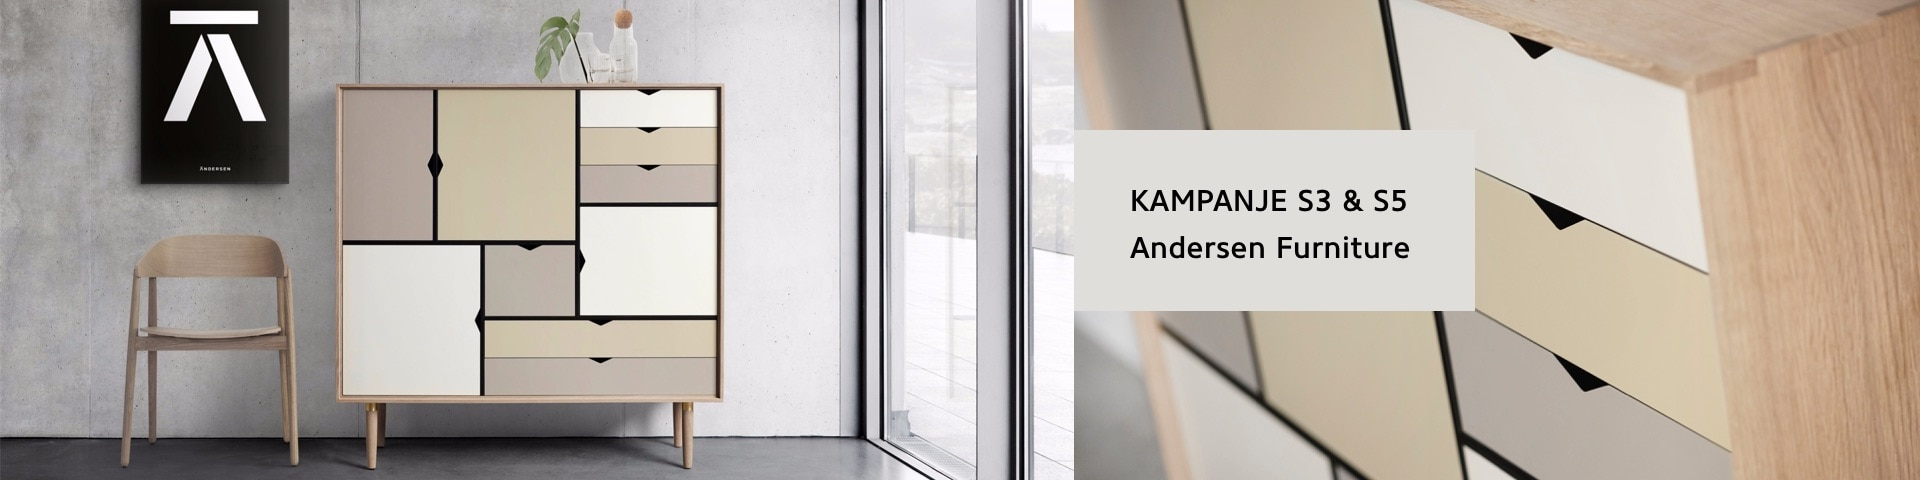 Kampanje S3 & S5 - Andersen Furniture